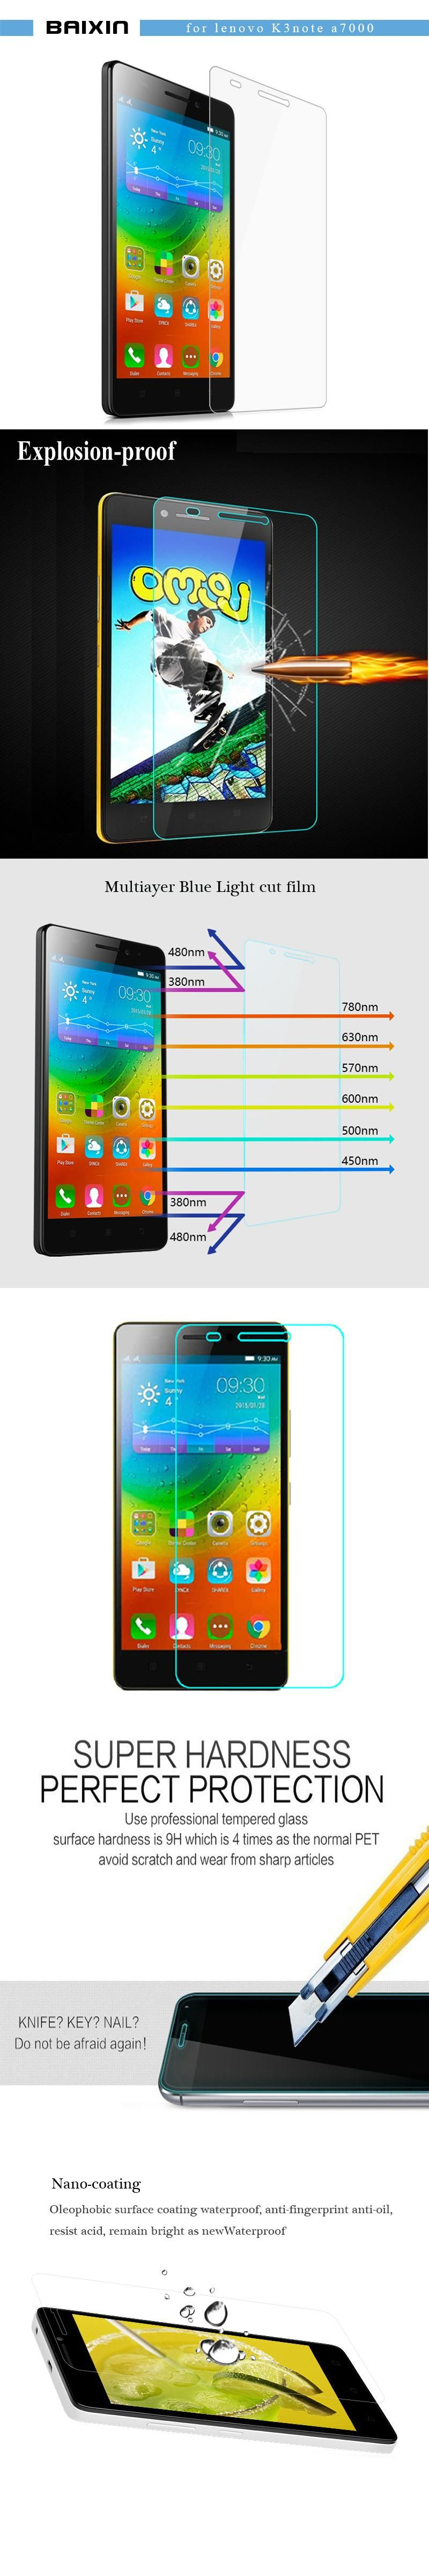 03mm Premium Tempered Glass For Lenovo K3 Note Screen Protector Samsung J1 2016 Kaca Pelindung Layar A7000 K50